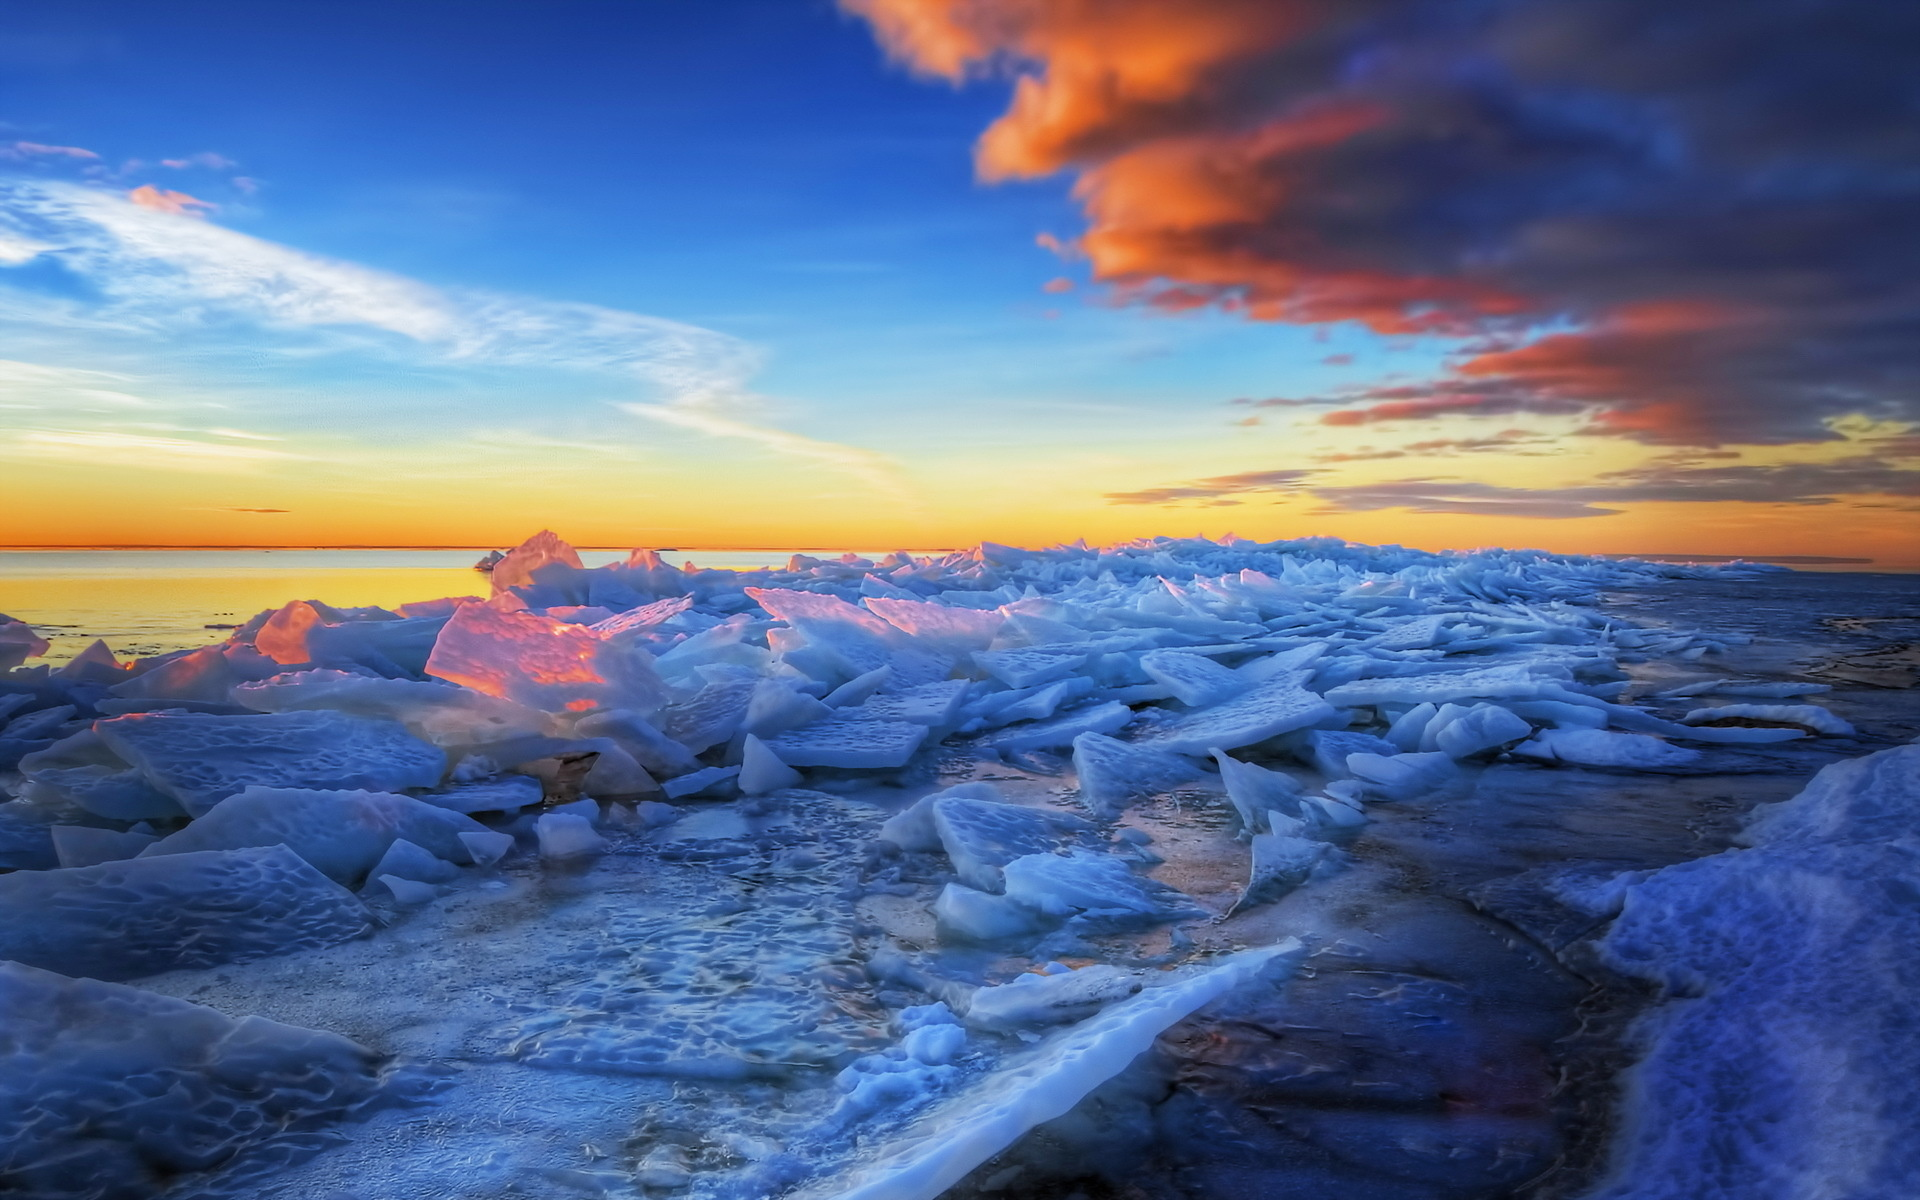 HDR Frozen Beach Wallpaper